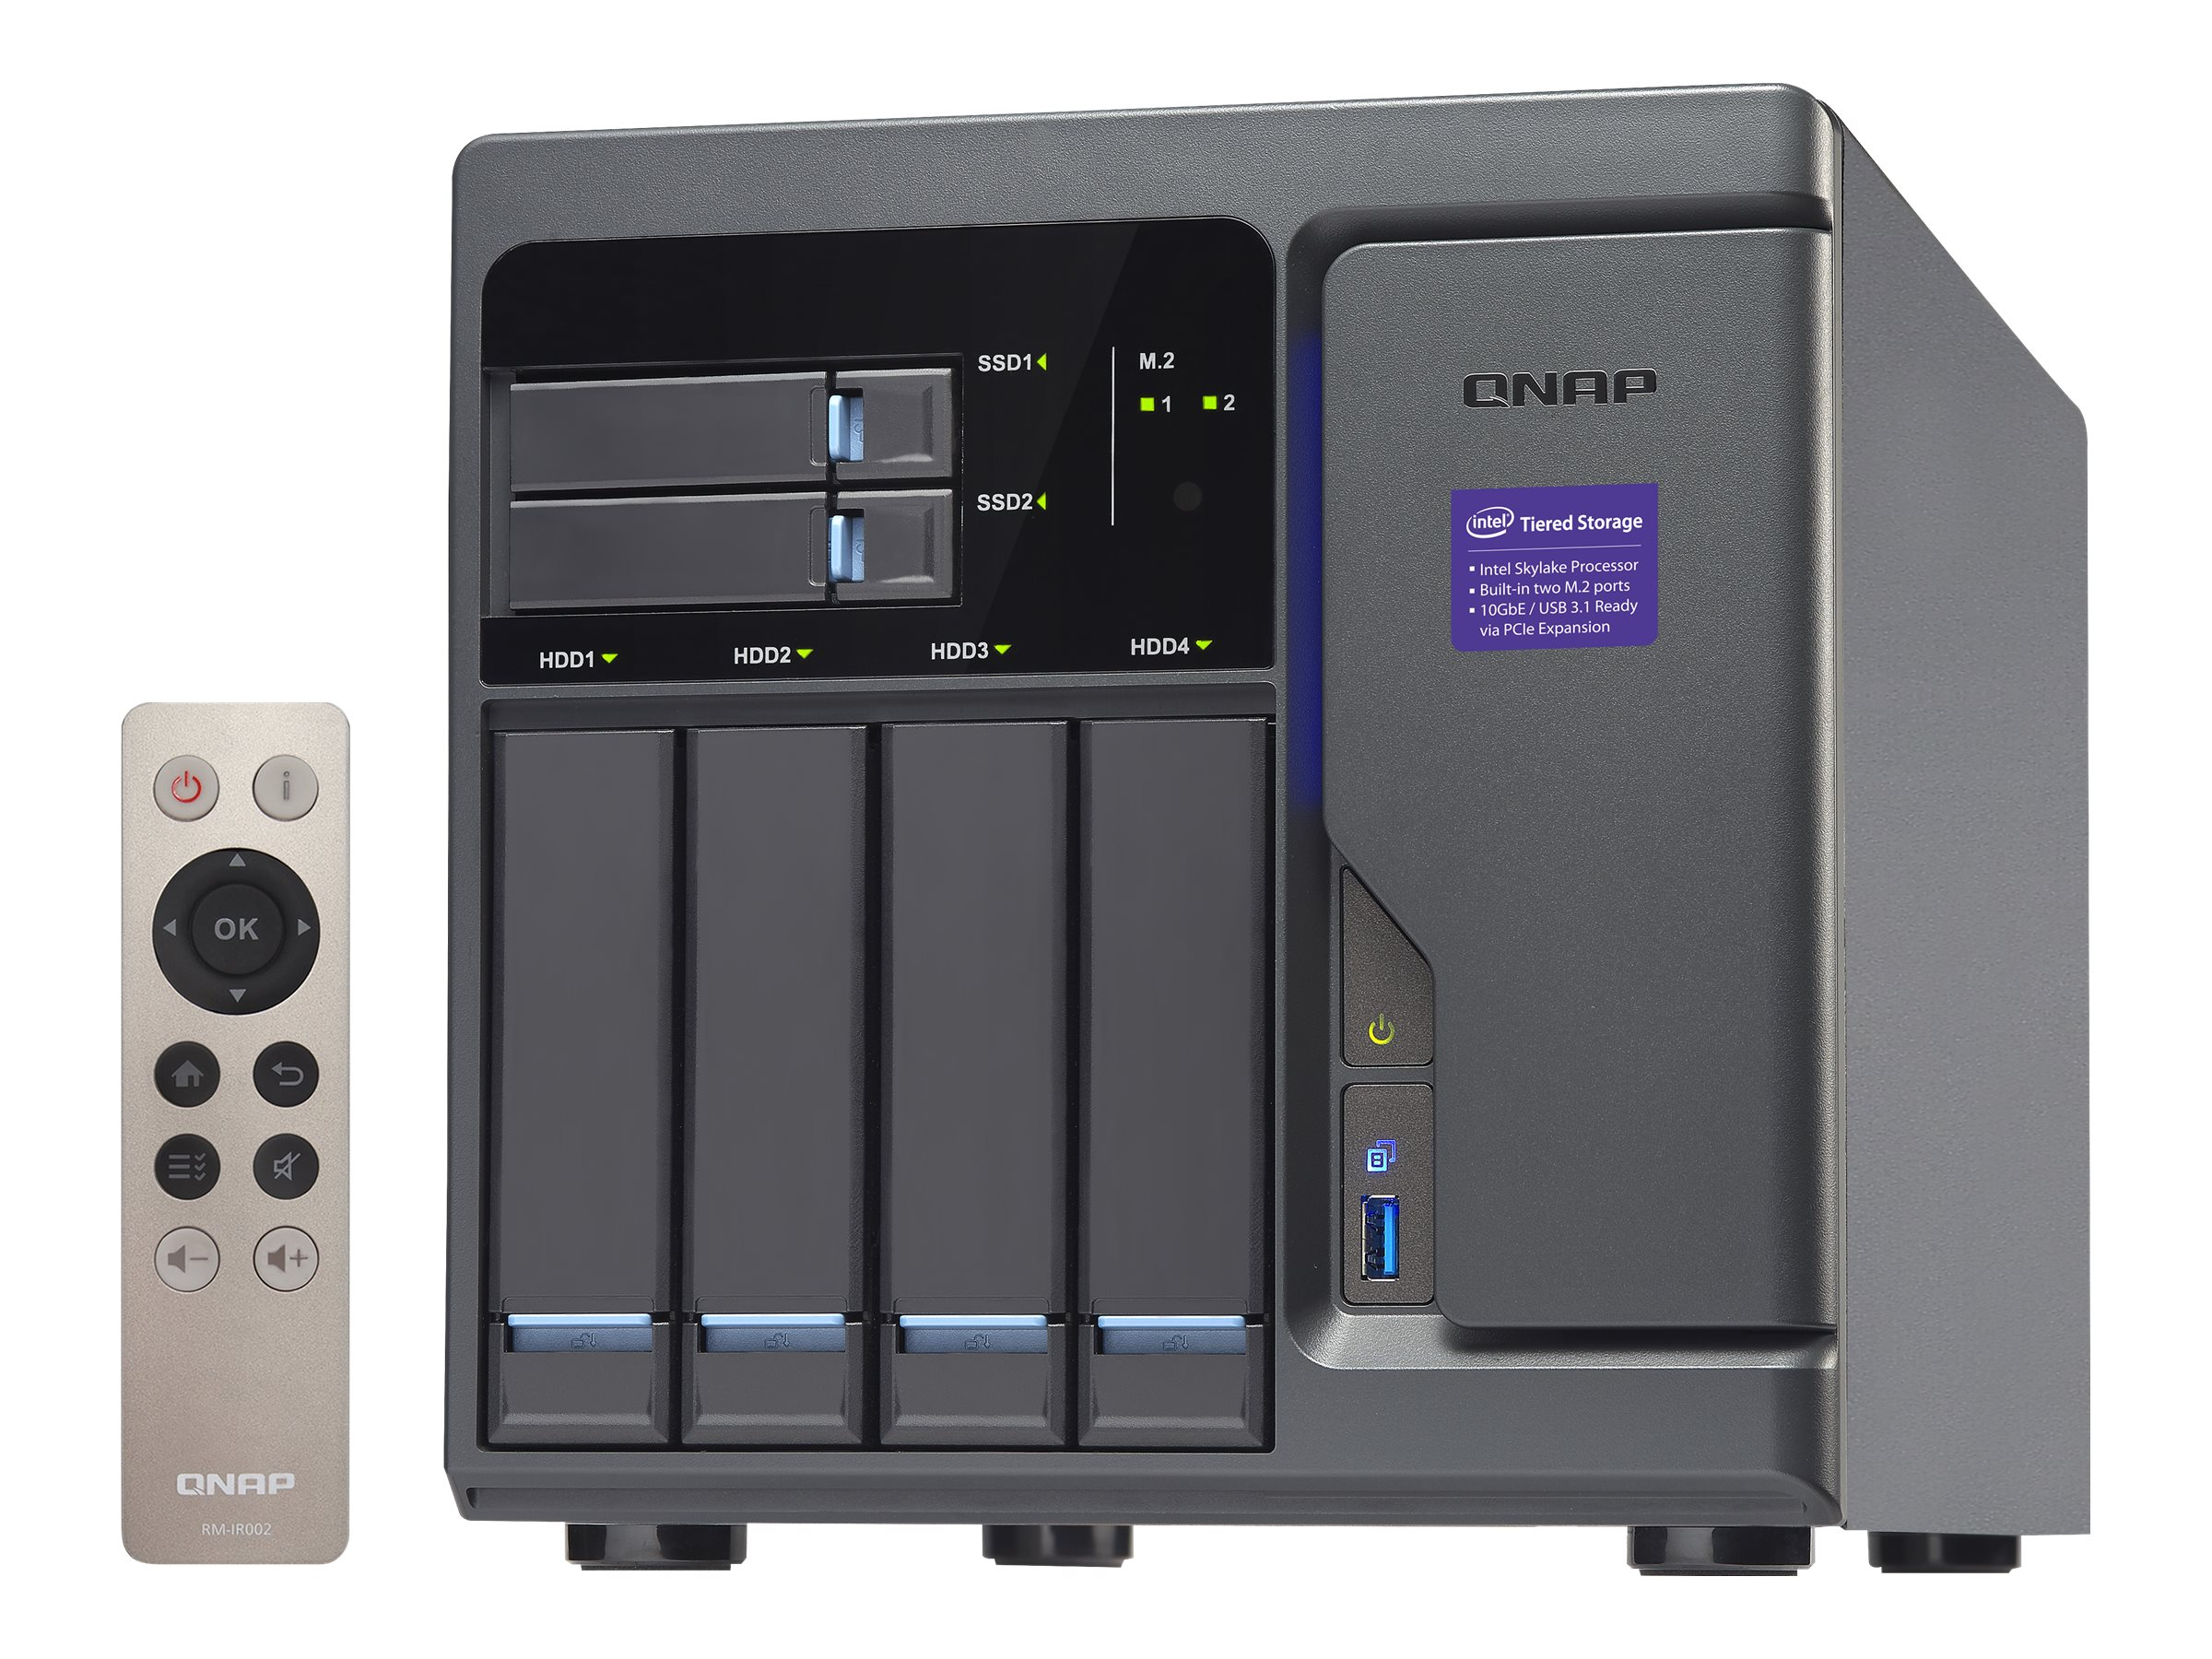 Qnap High Performance 6-Bay 4+2 Thunderbolt 2 DAS NAS iSCSI IP-SAN